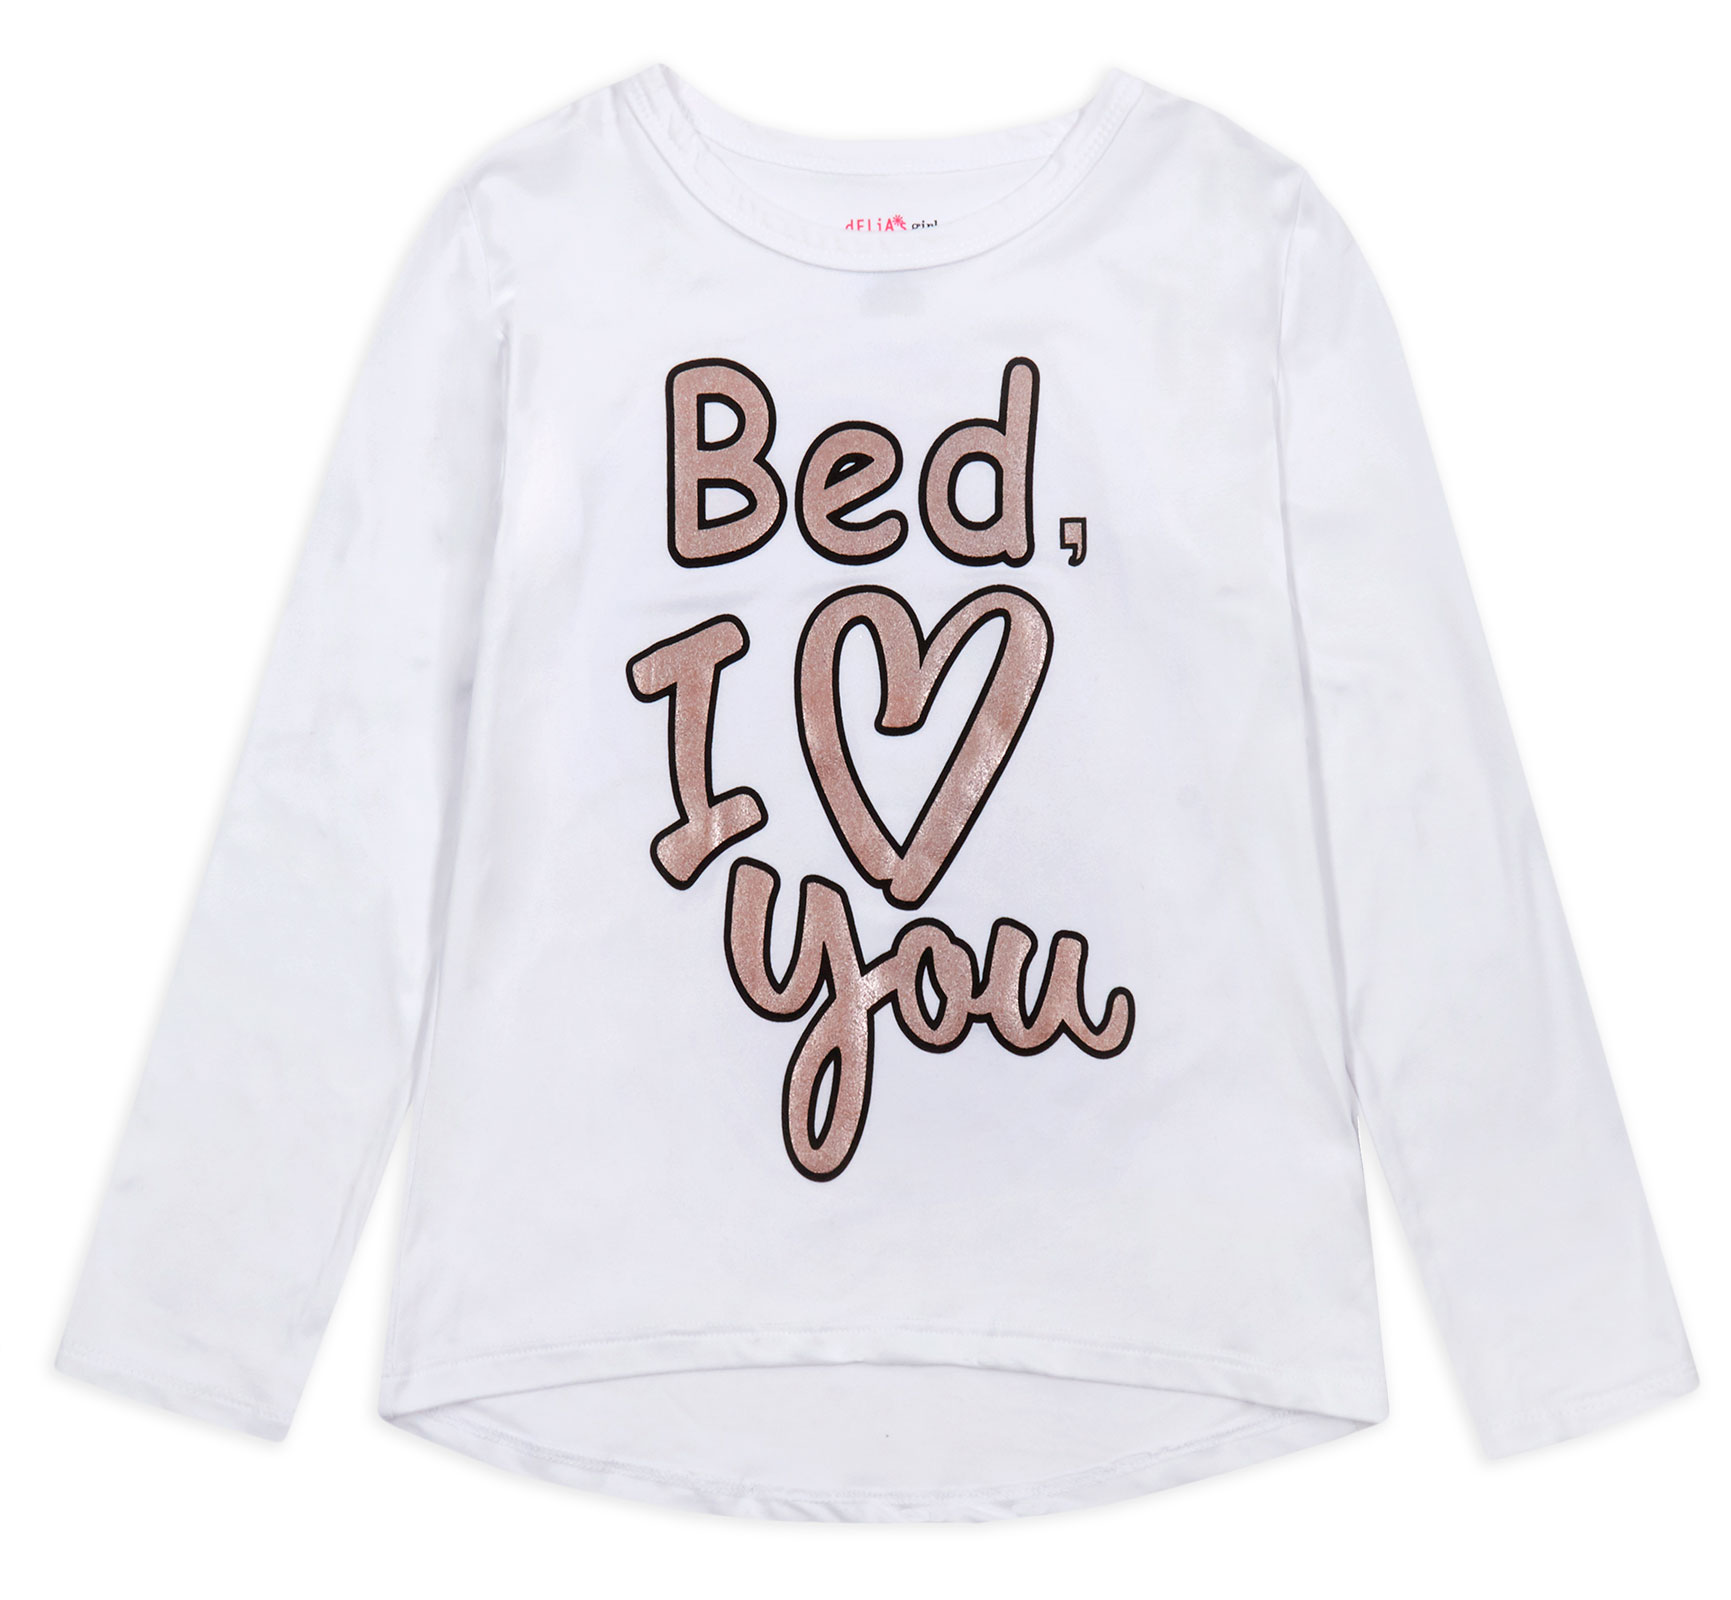 Girls Pyjama Set Kids New 2 Piece Long Sleeve Full Length PJs Ages 7-16 Years